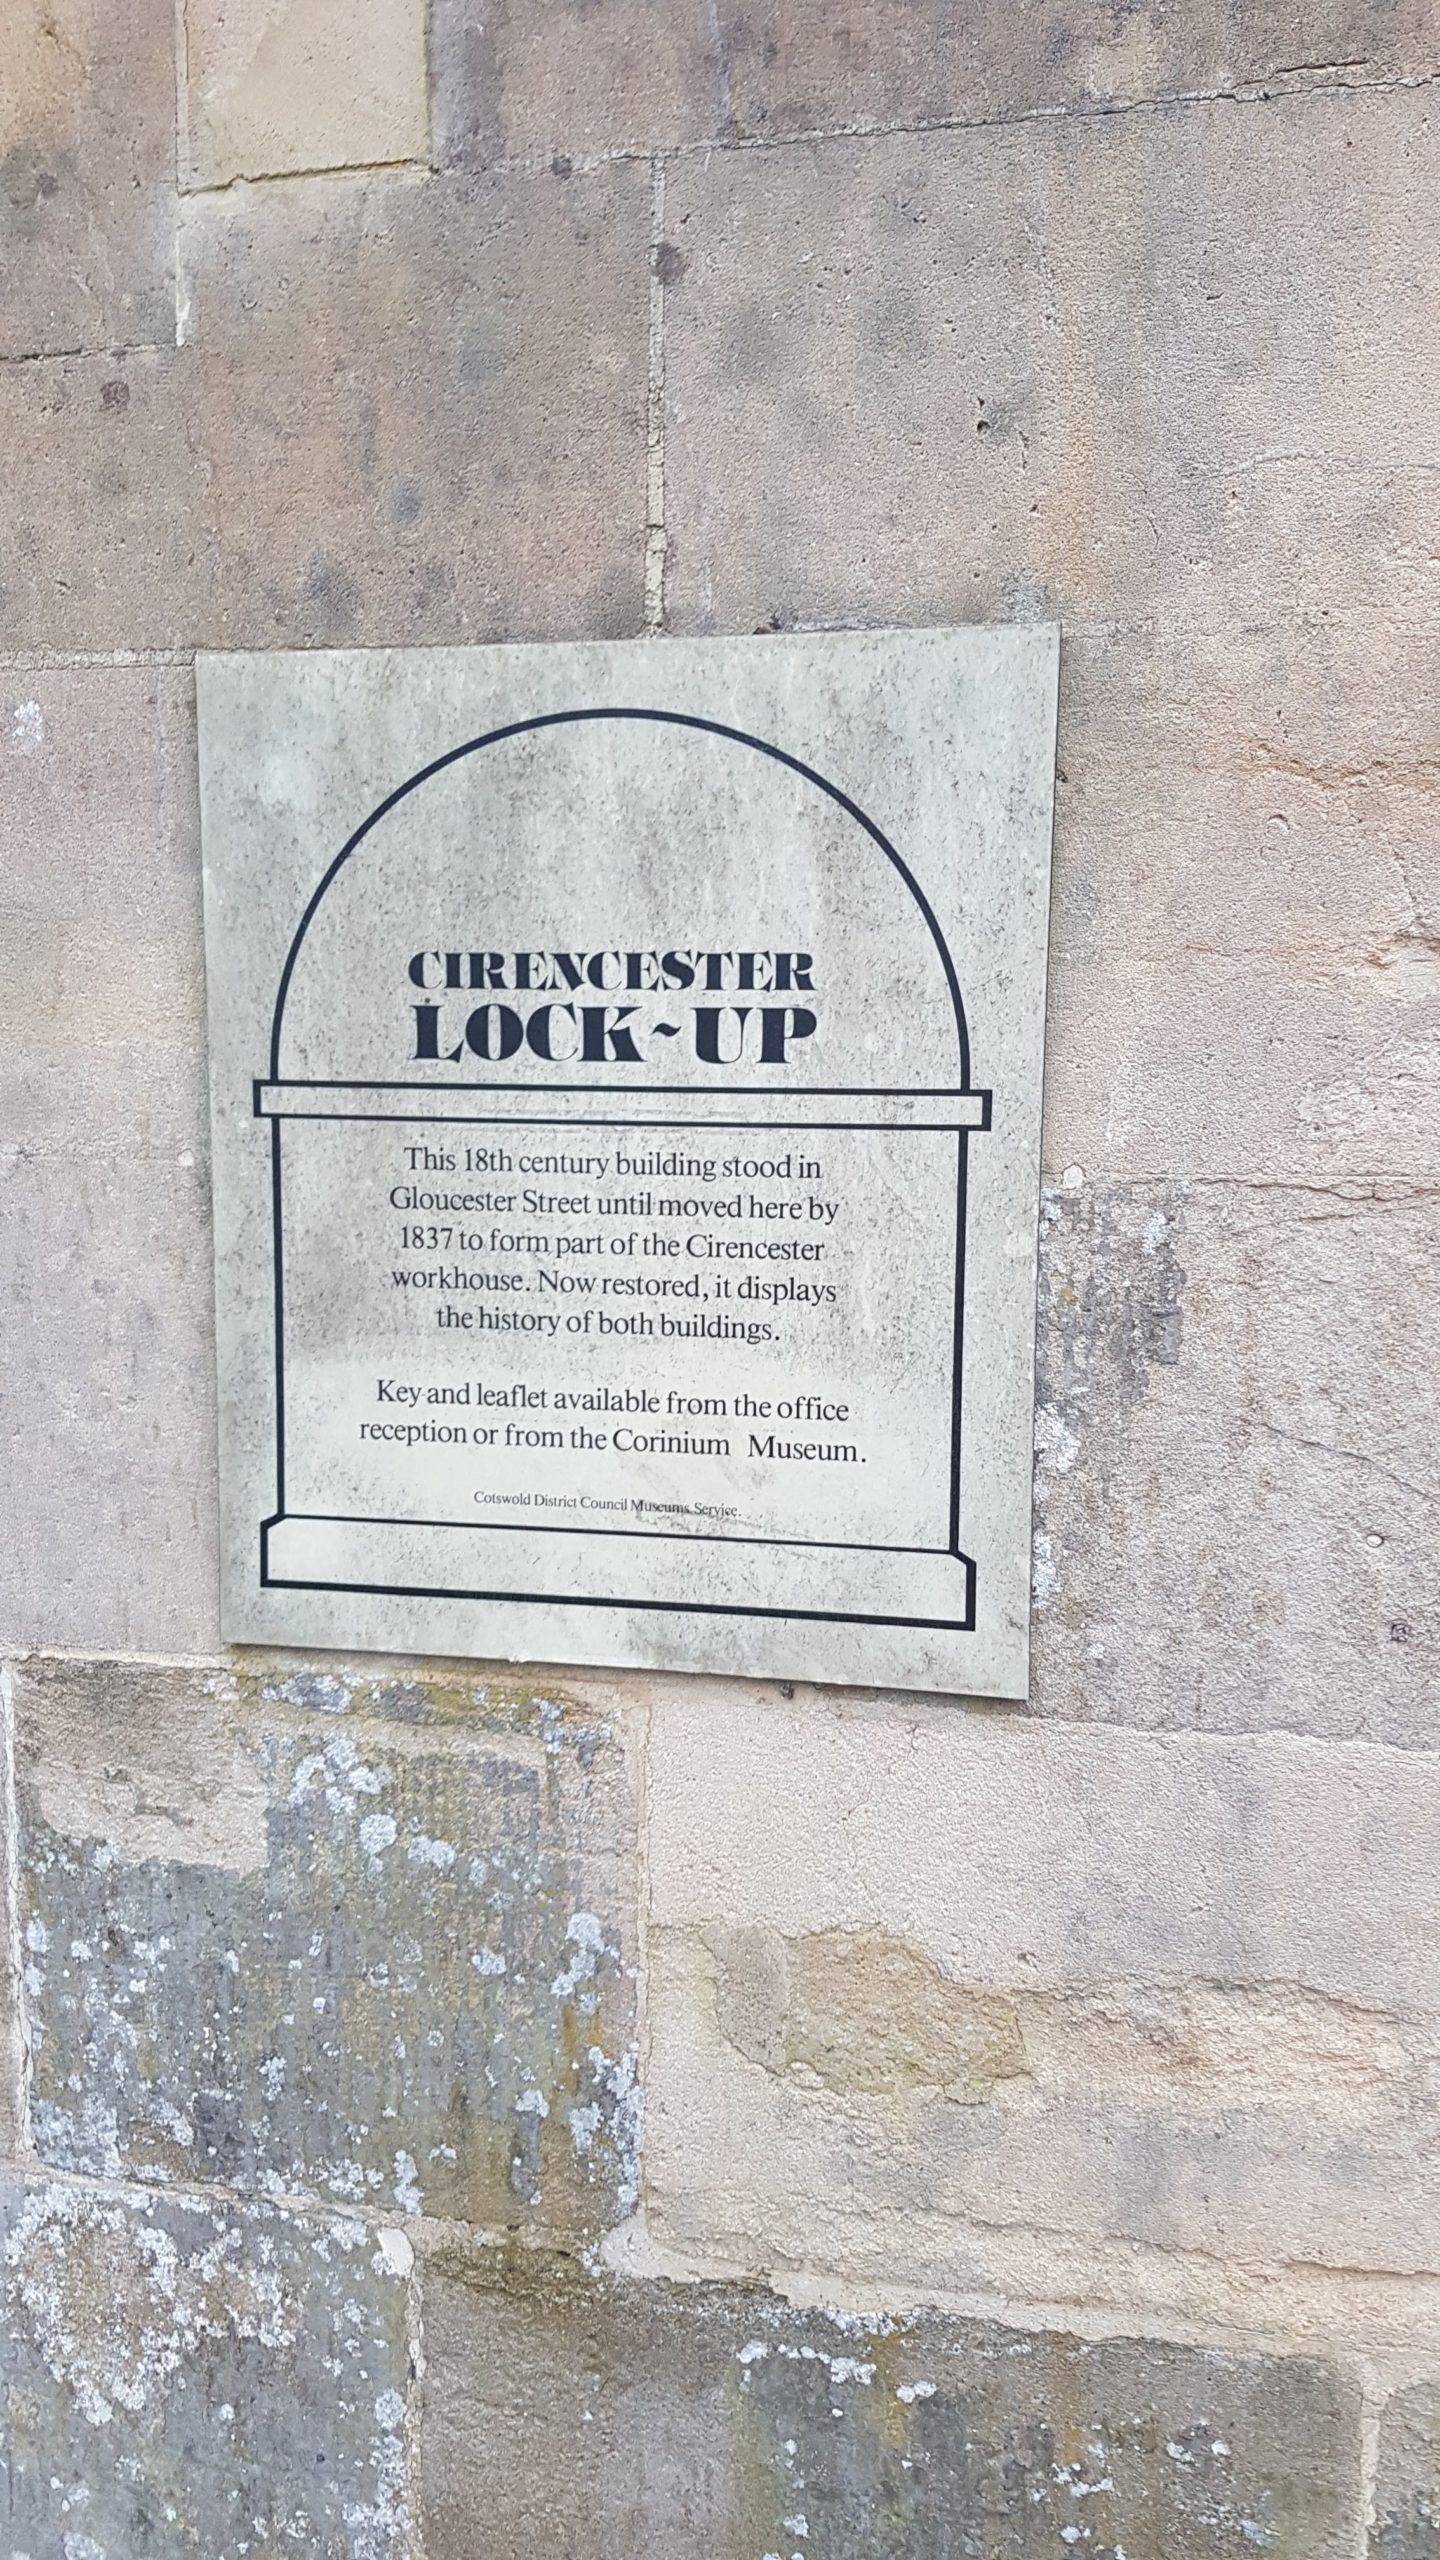 Plaque on the exterior wall of the lock-up. Note it is incorrect - the lock-up is a 19th century building, not 18th century.